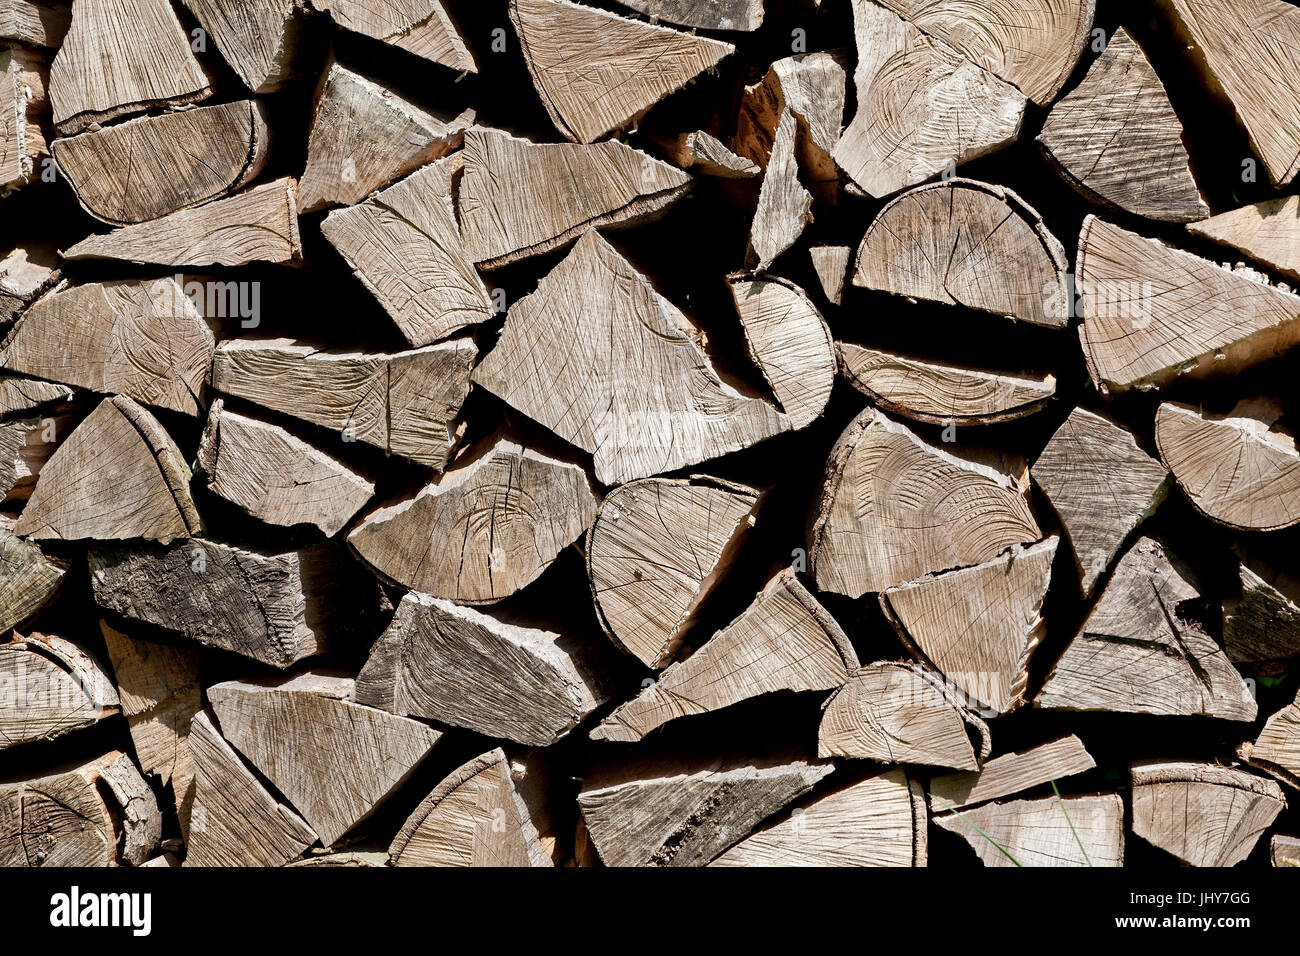 Firewood pile, fire wood, wooden pile - stack of firewood, Brennholzstapel, Feuerholz, Holzstapel - Stack of firewood - Stock Image